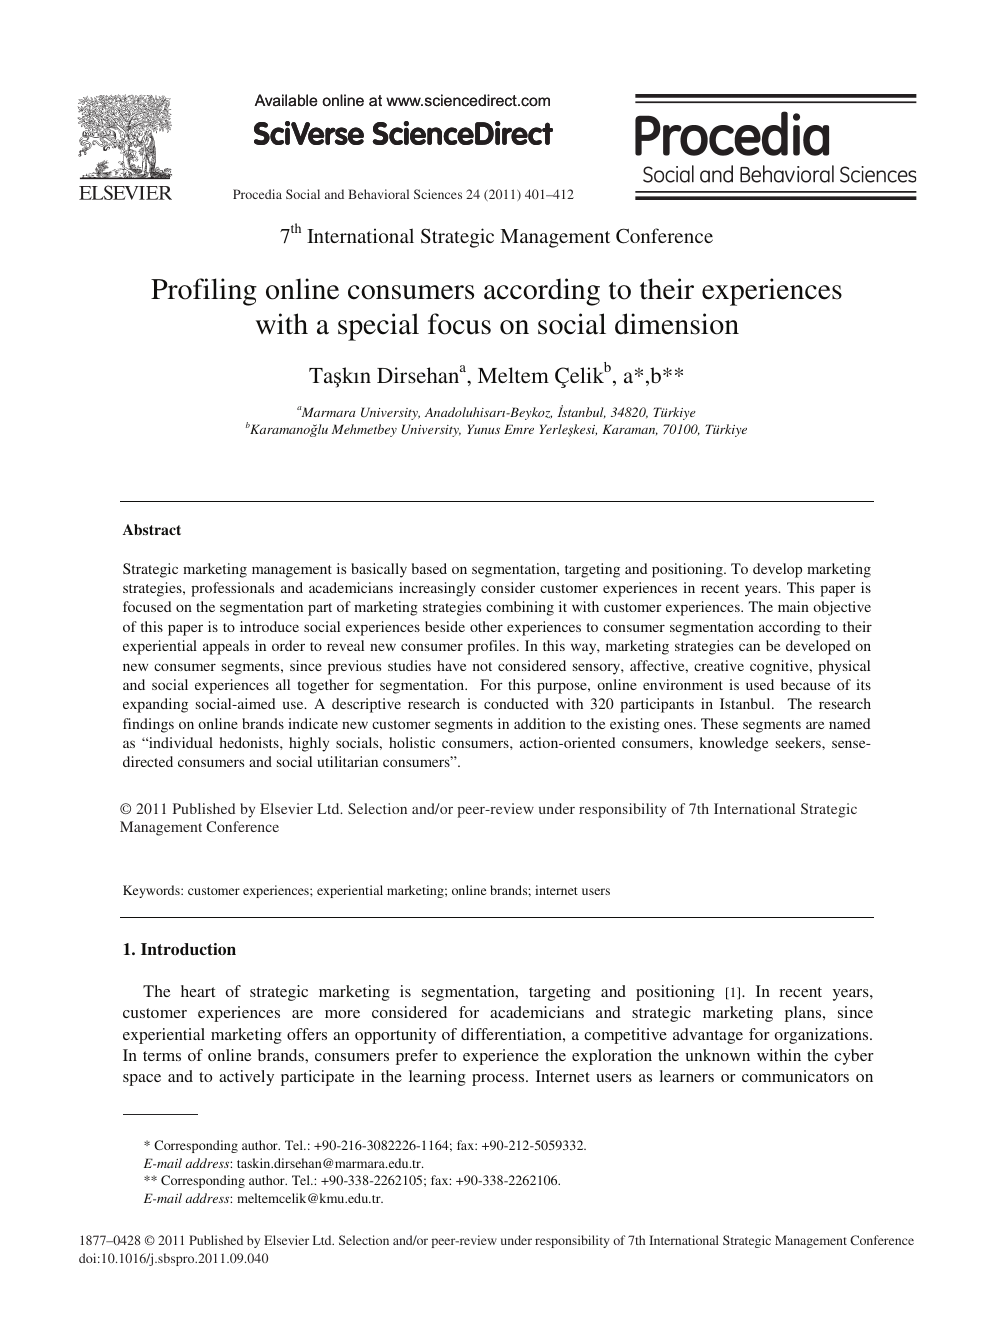 Profiling online consumers according to their experiences with a